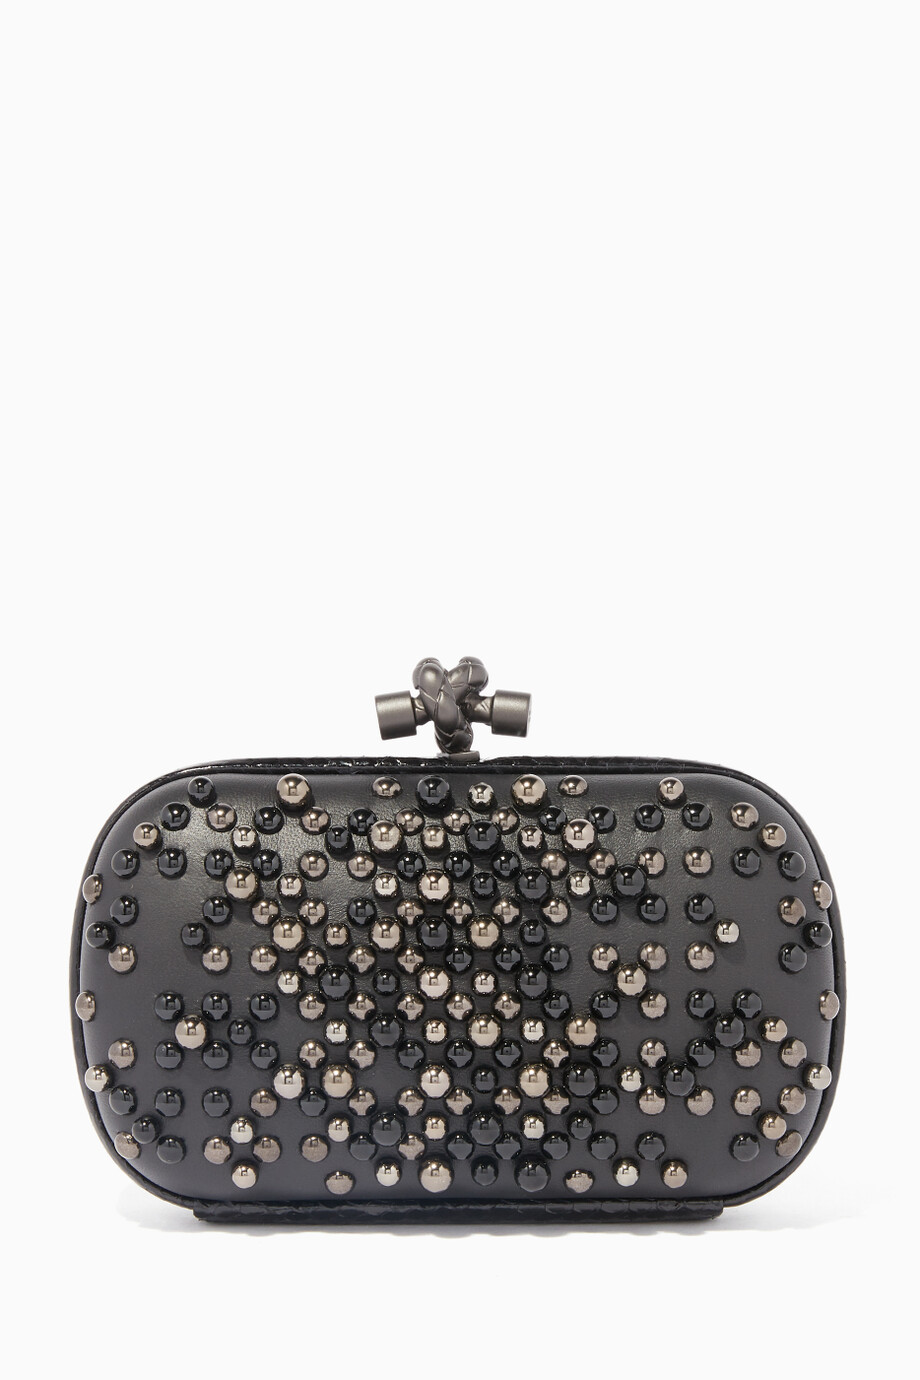 Shop Bottega Veneta Gold Black Spheres Knot Clutch for Women ... e0088cd25b7d6